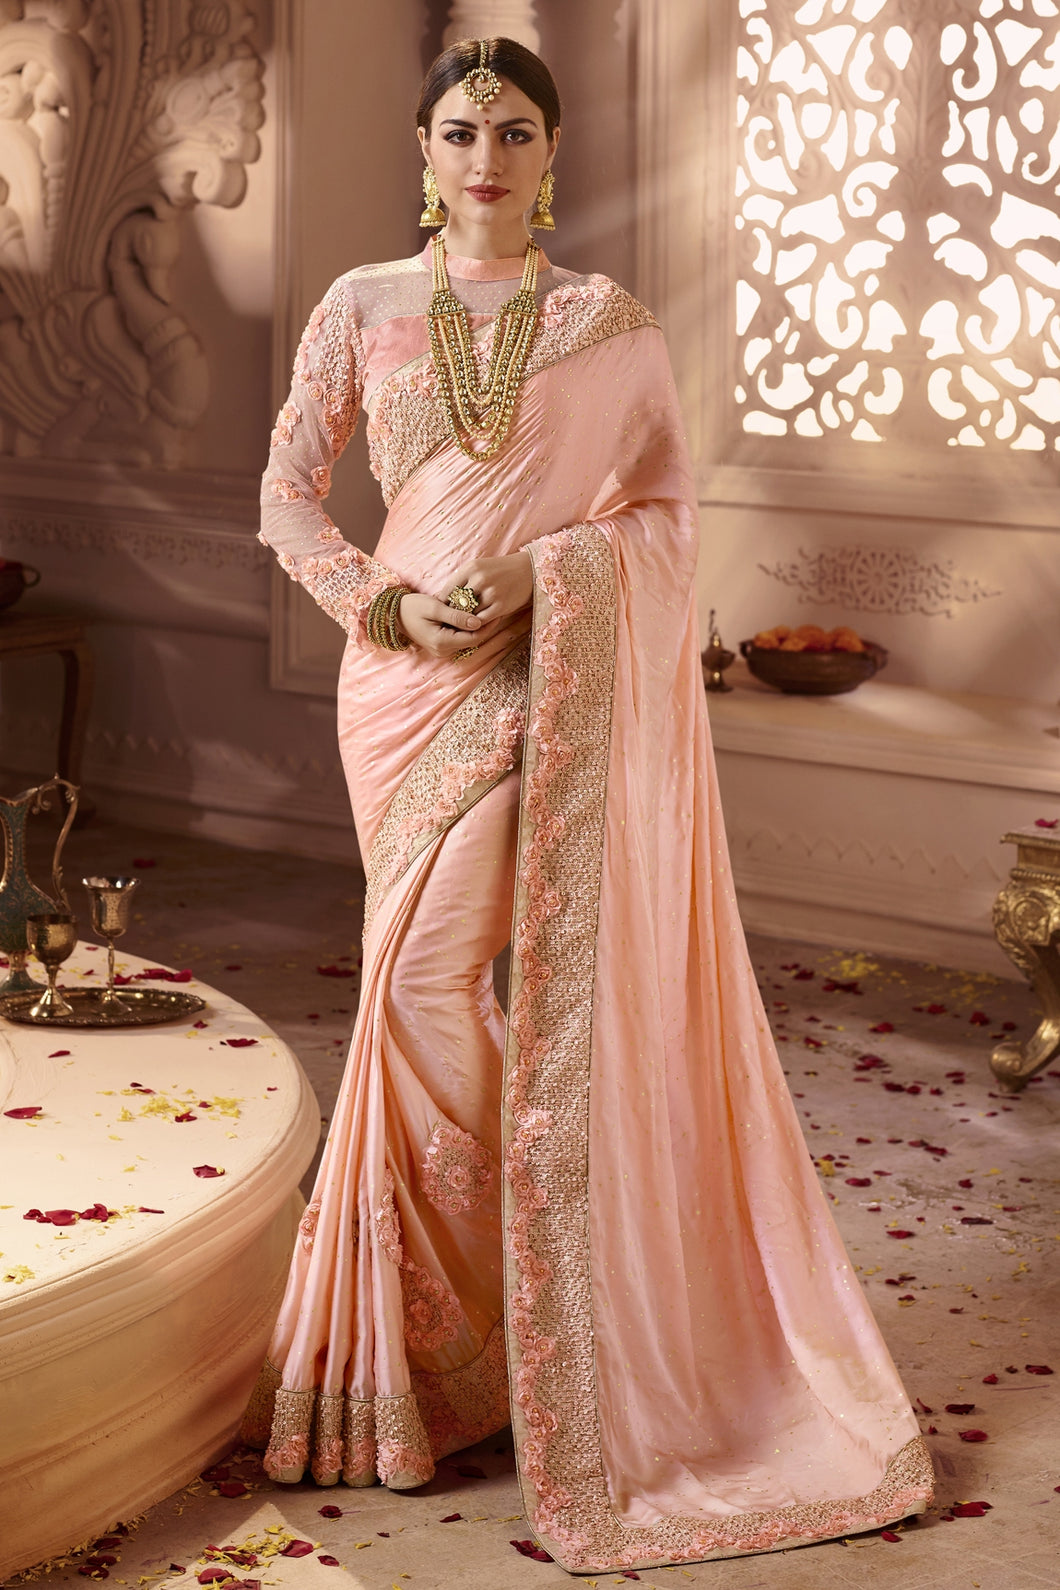 Bhelpuri Baby PInk Satin Zari Embroidered Party Wear Saree with Embroidered Blouse Piece